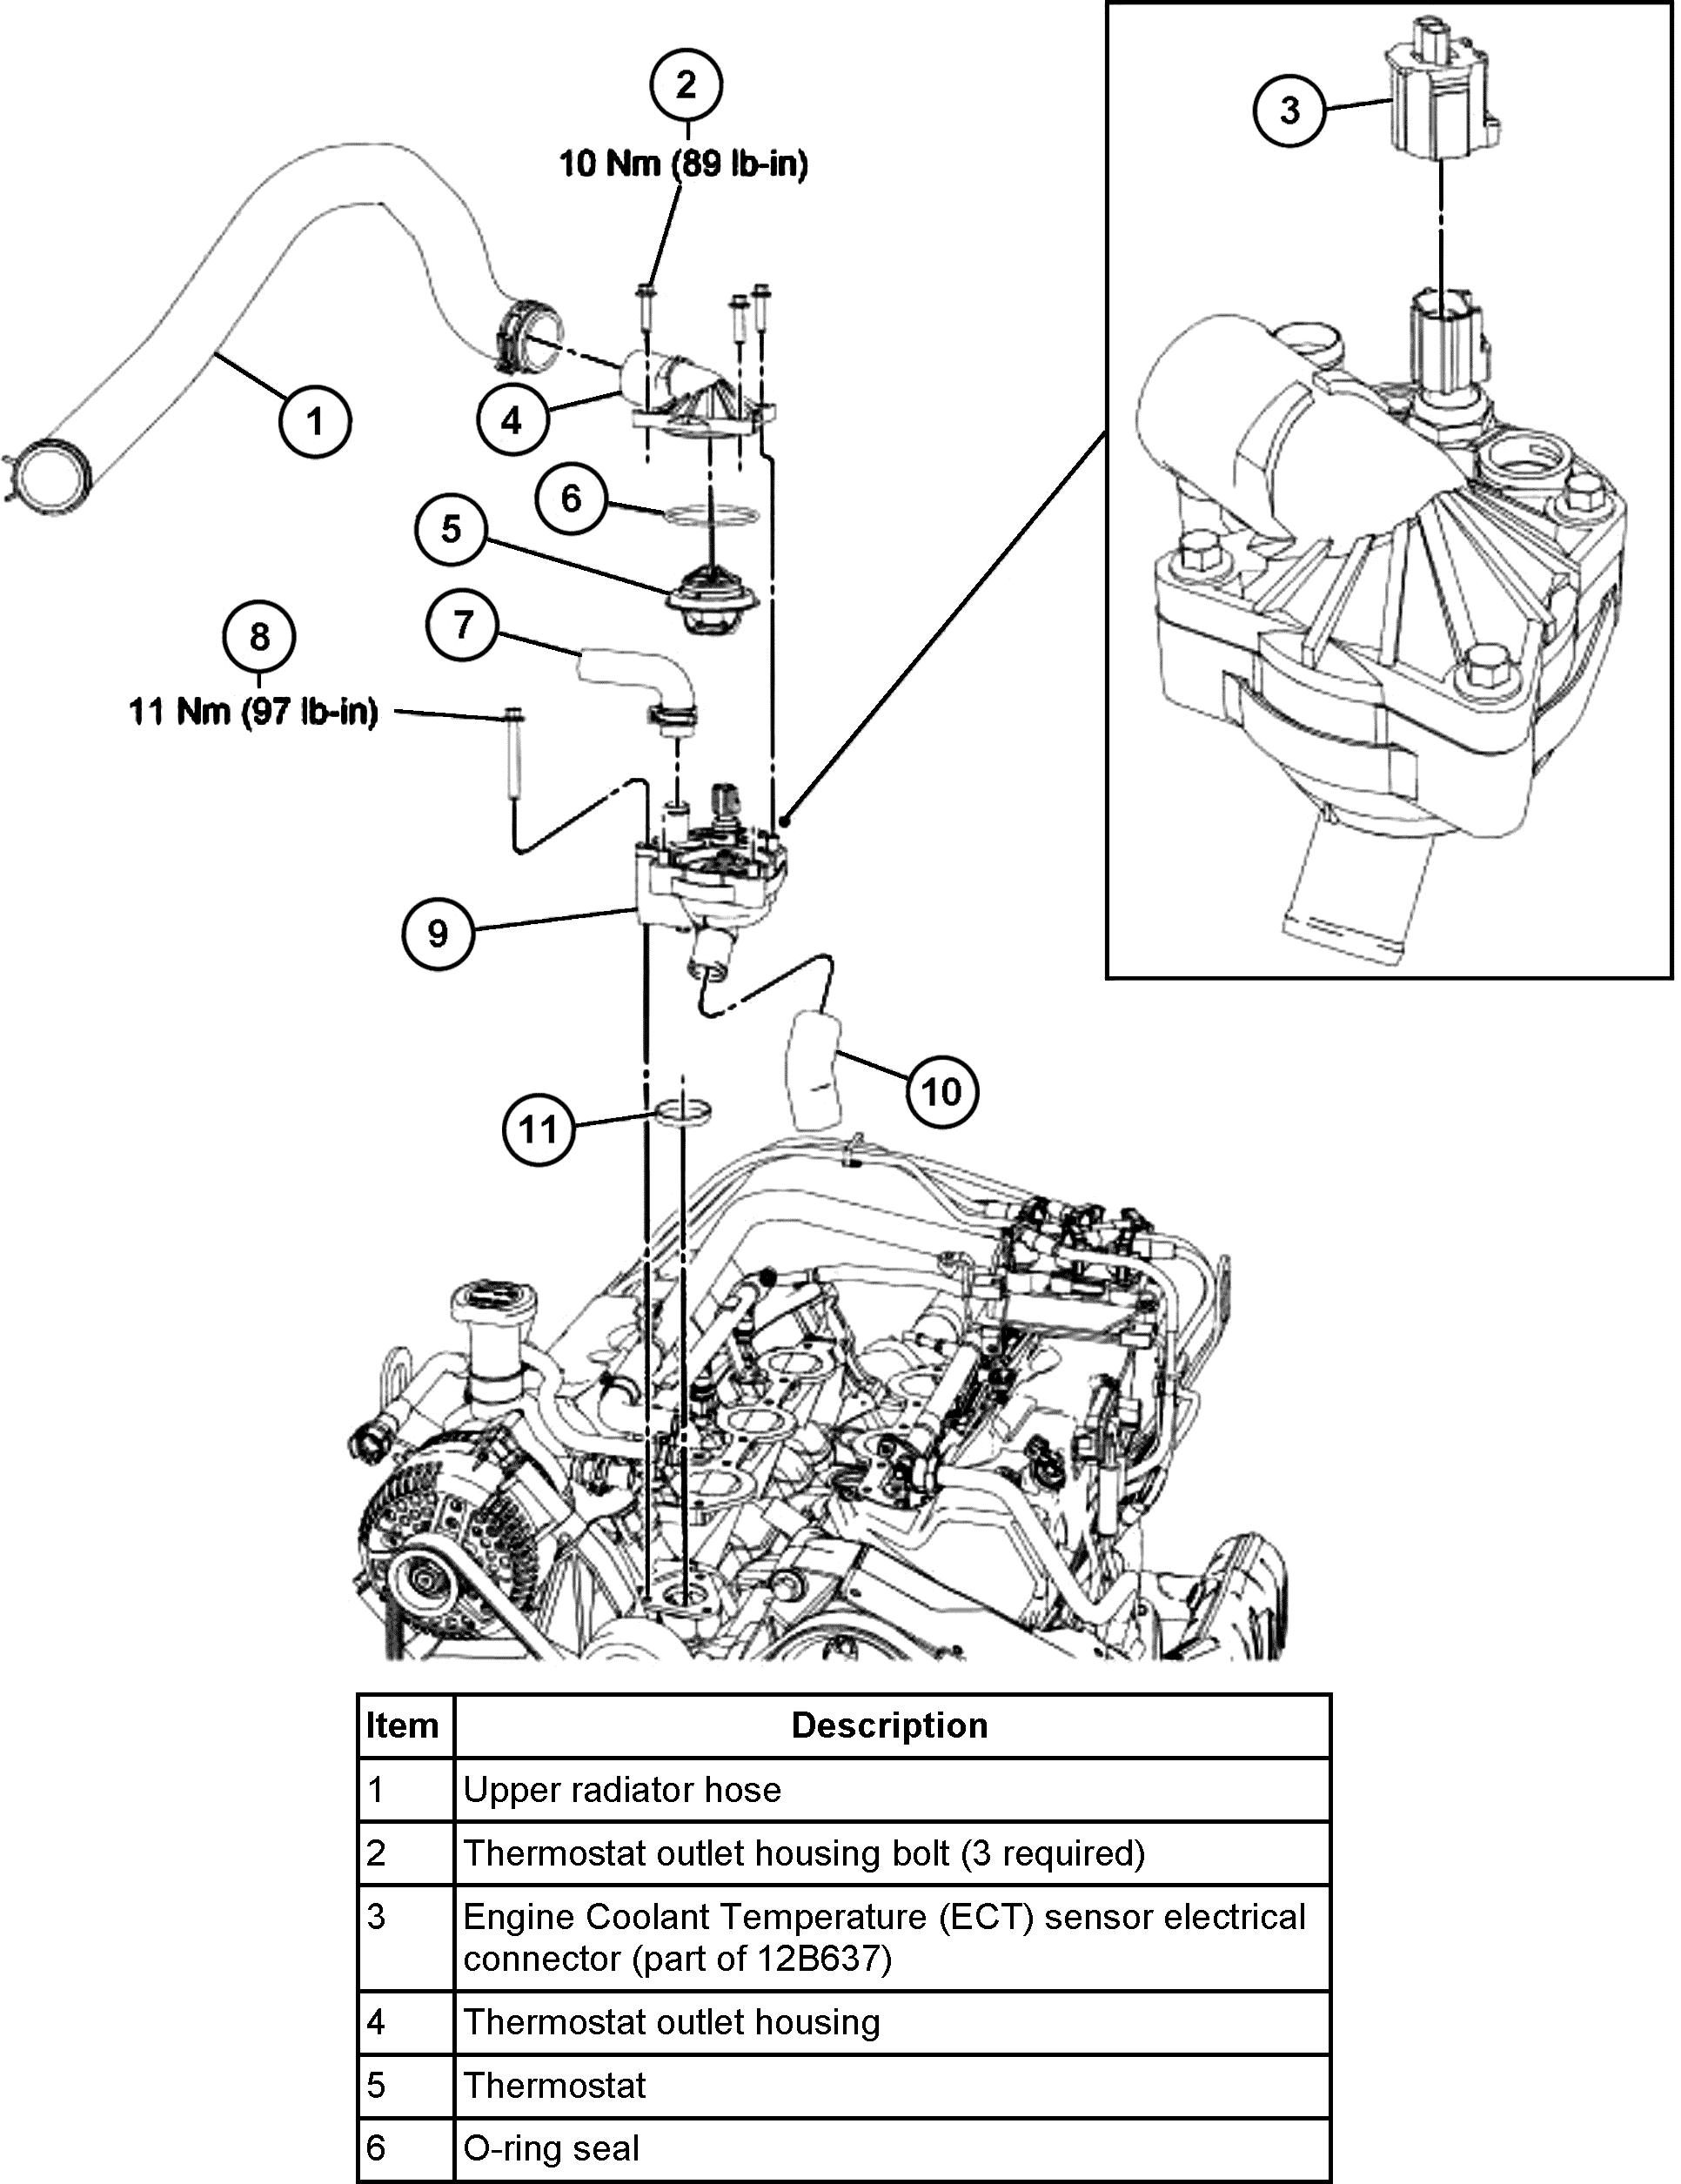 2011 Ford Ranger Thermostat Replacement